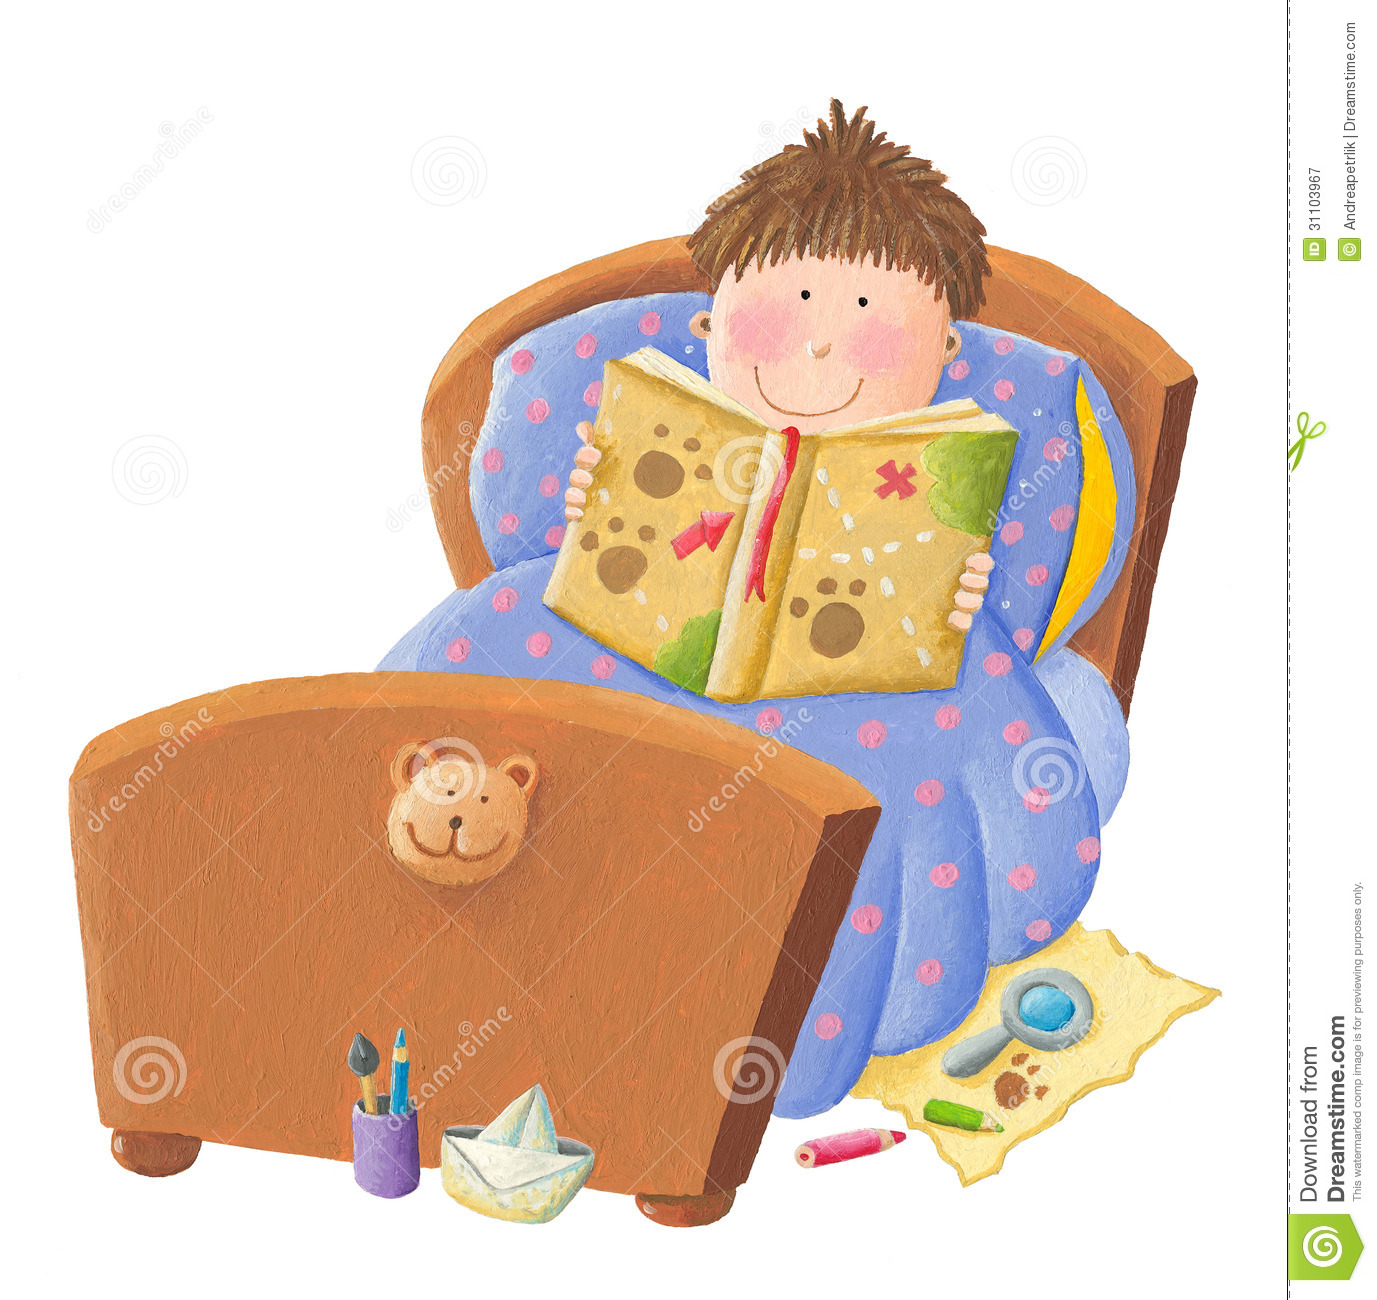 Bedtime clipart storytime. Child reading in bed